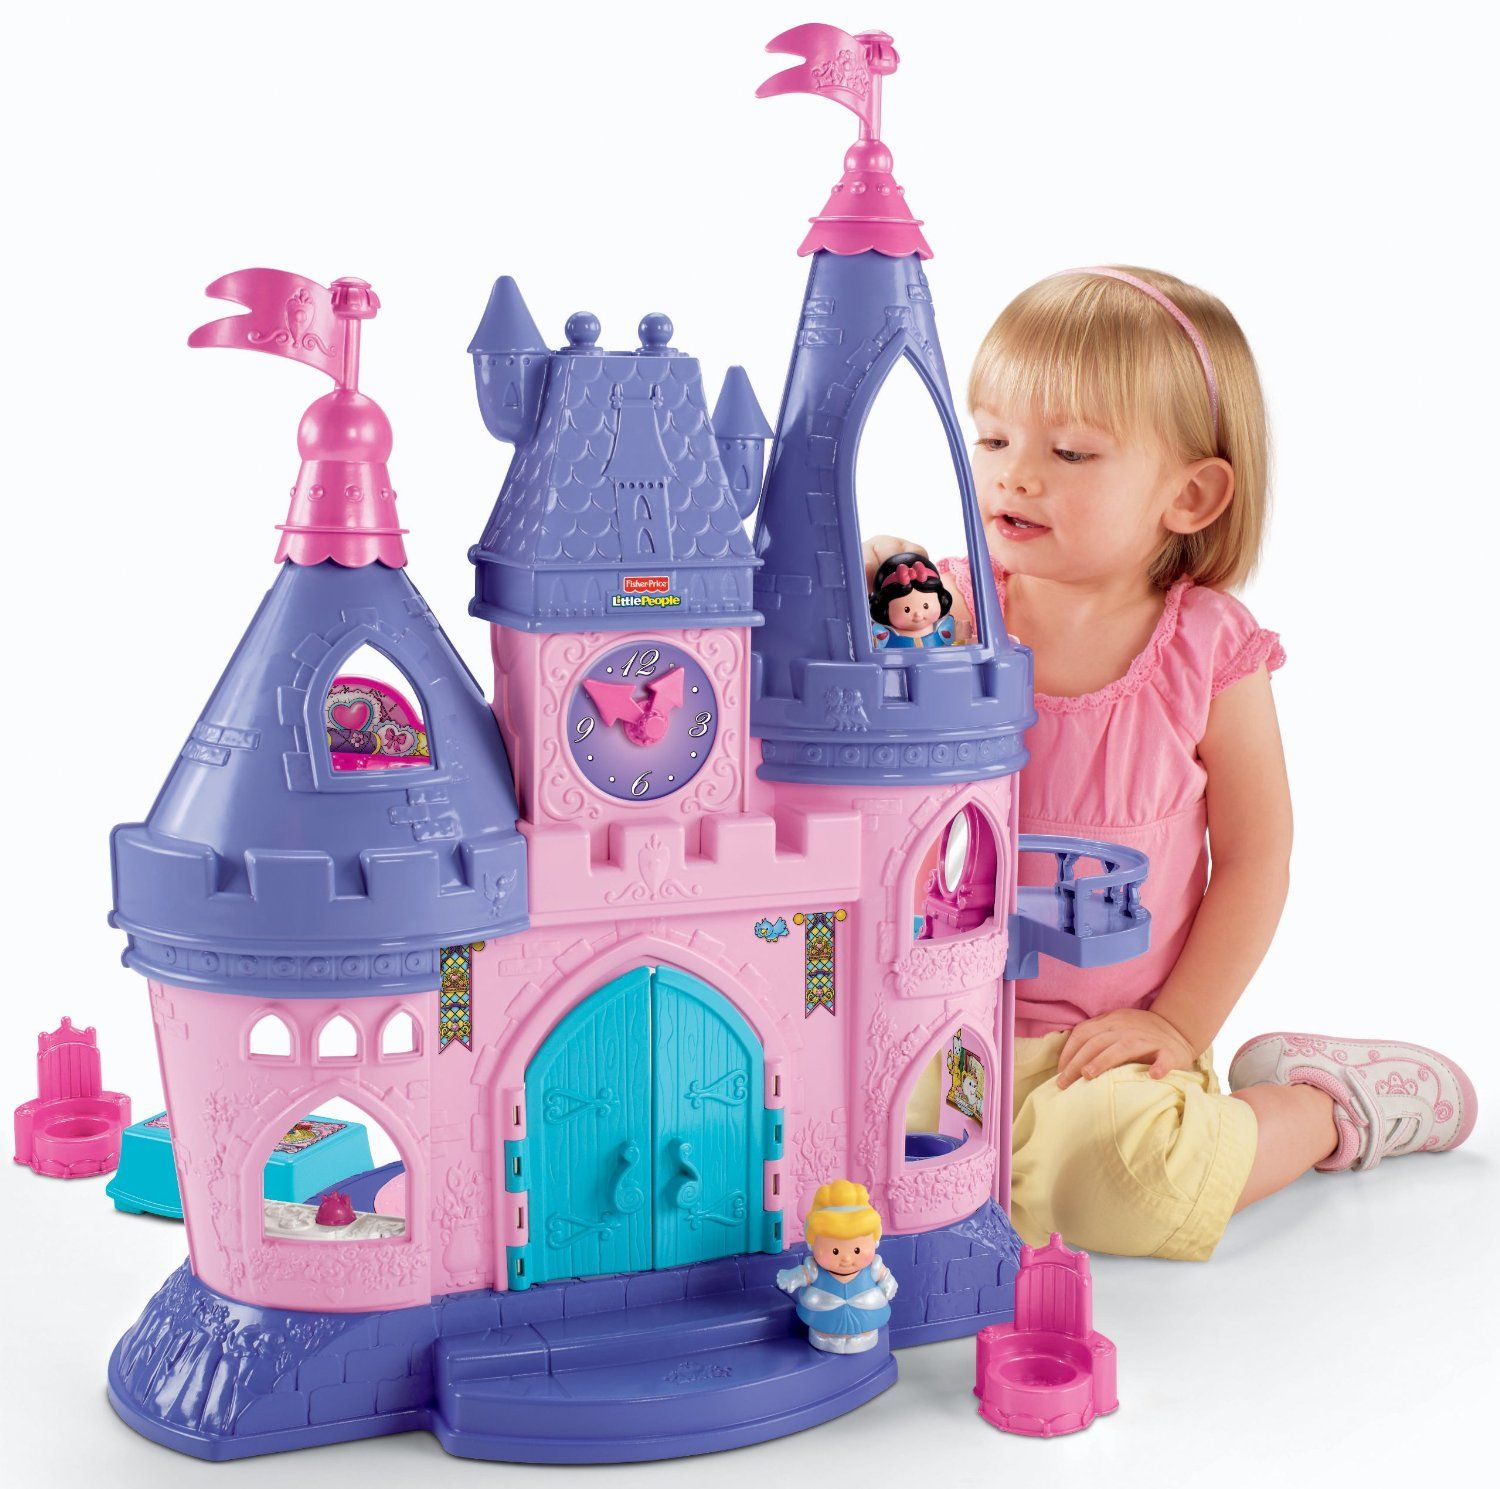 Best Great Gifts for 2 Yr Old Girl Pics